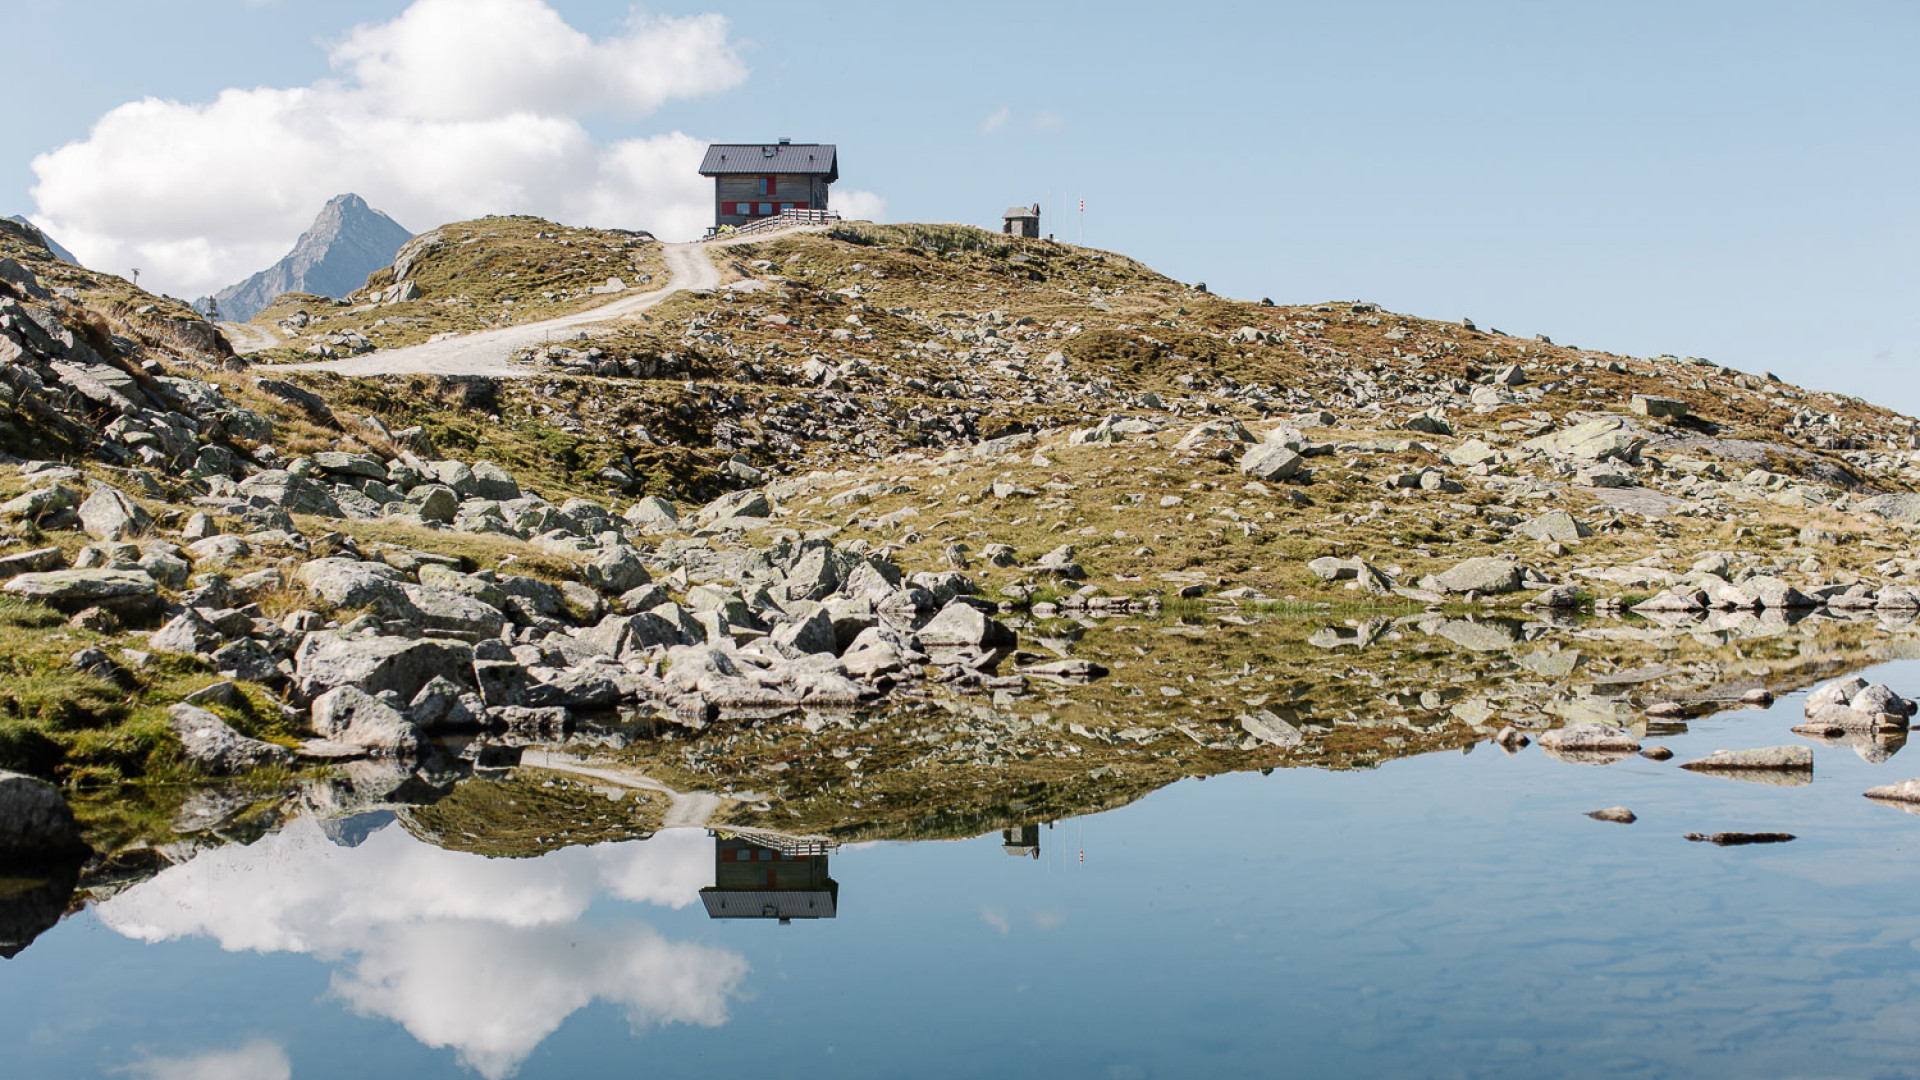 A mountain hut in the Zillertal Valley